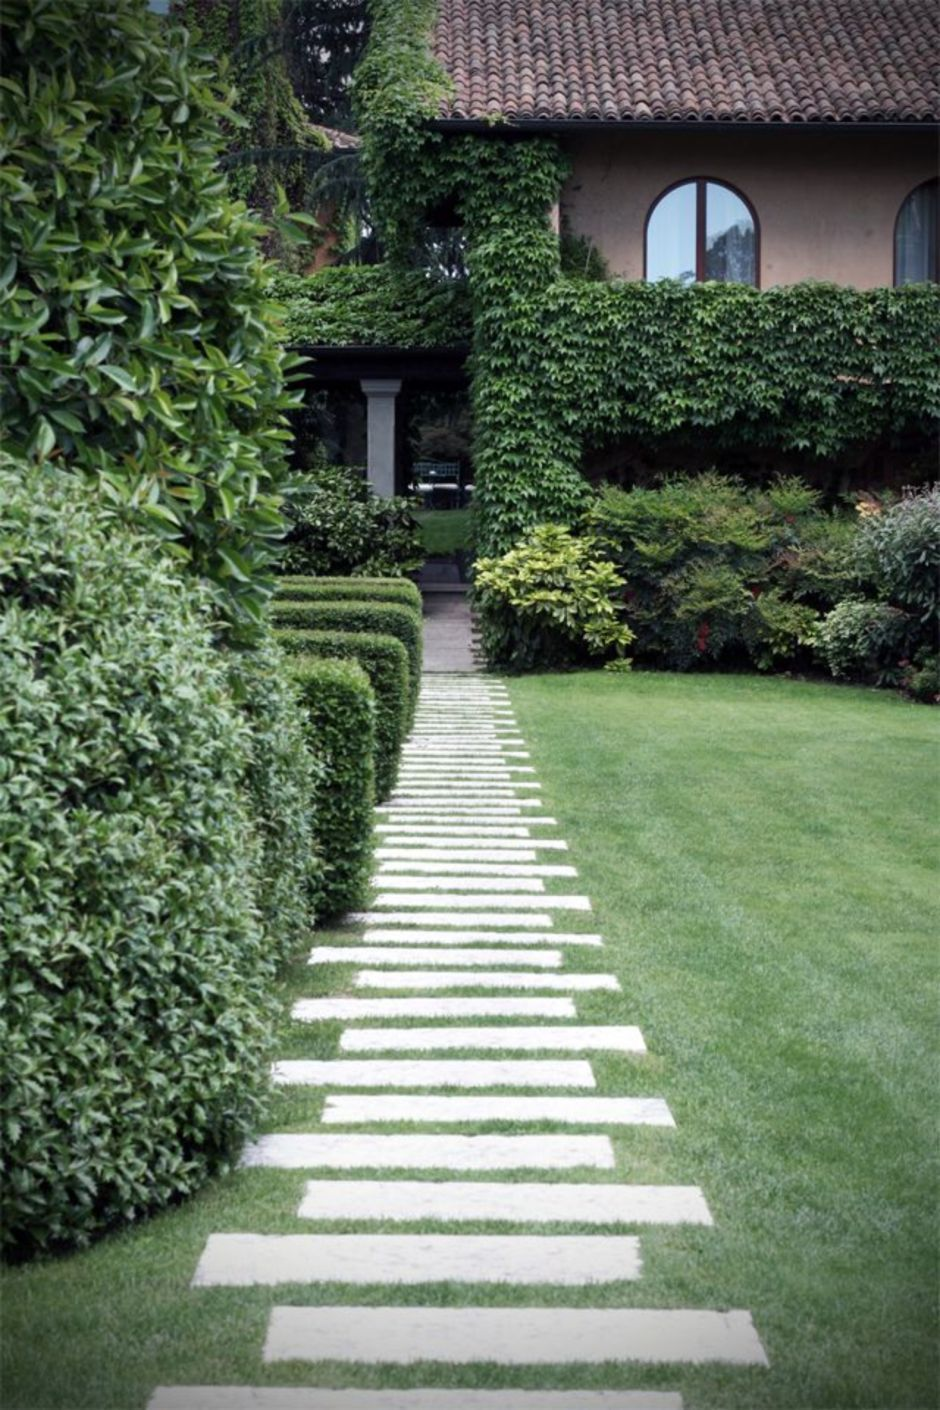 Marvelous Front Yard And Garden Walkway Landscaping #FarmhouseLandscape